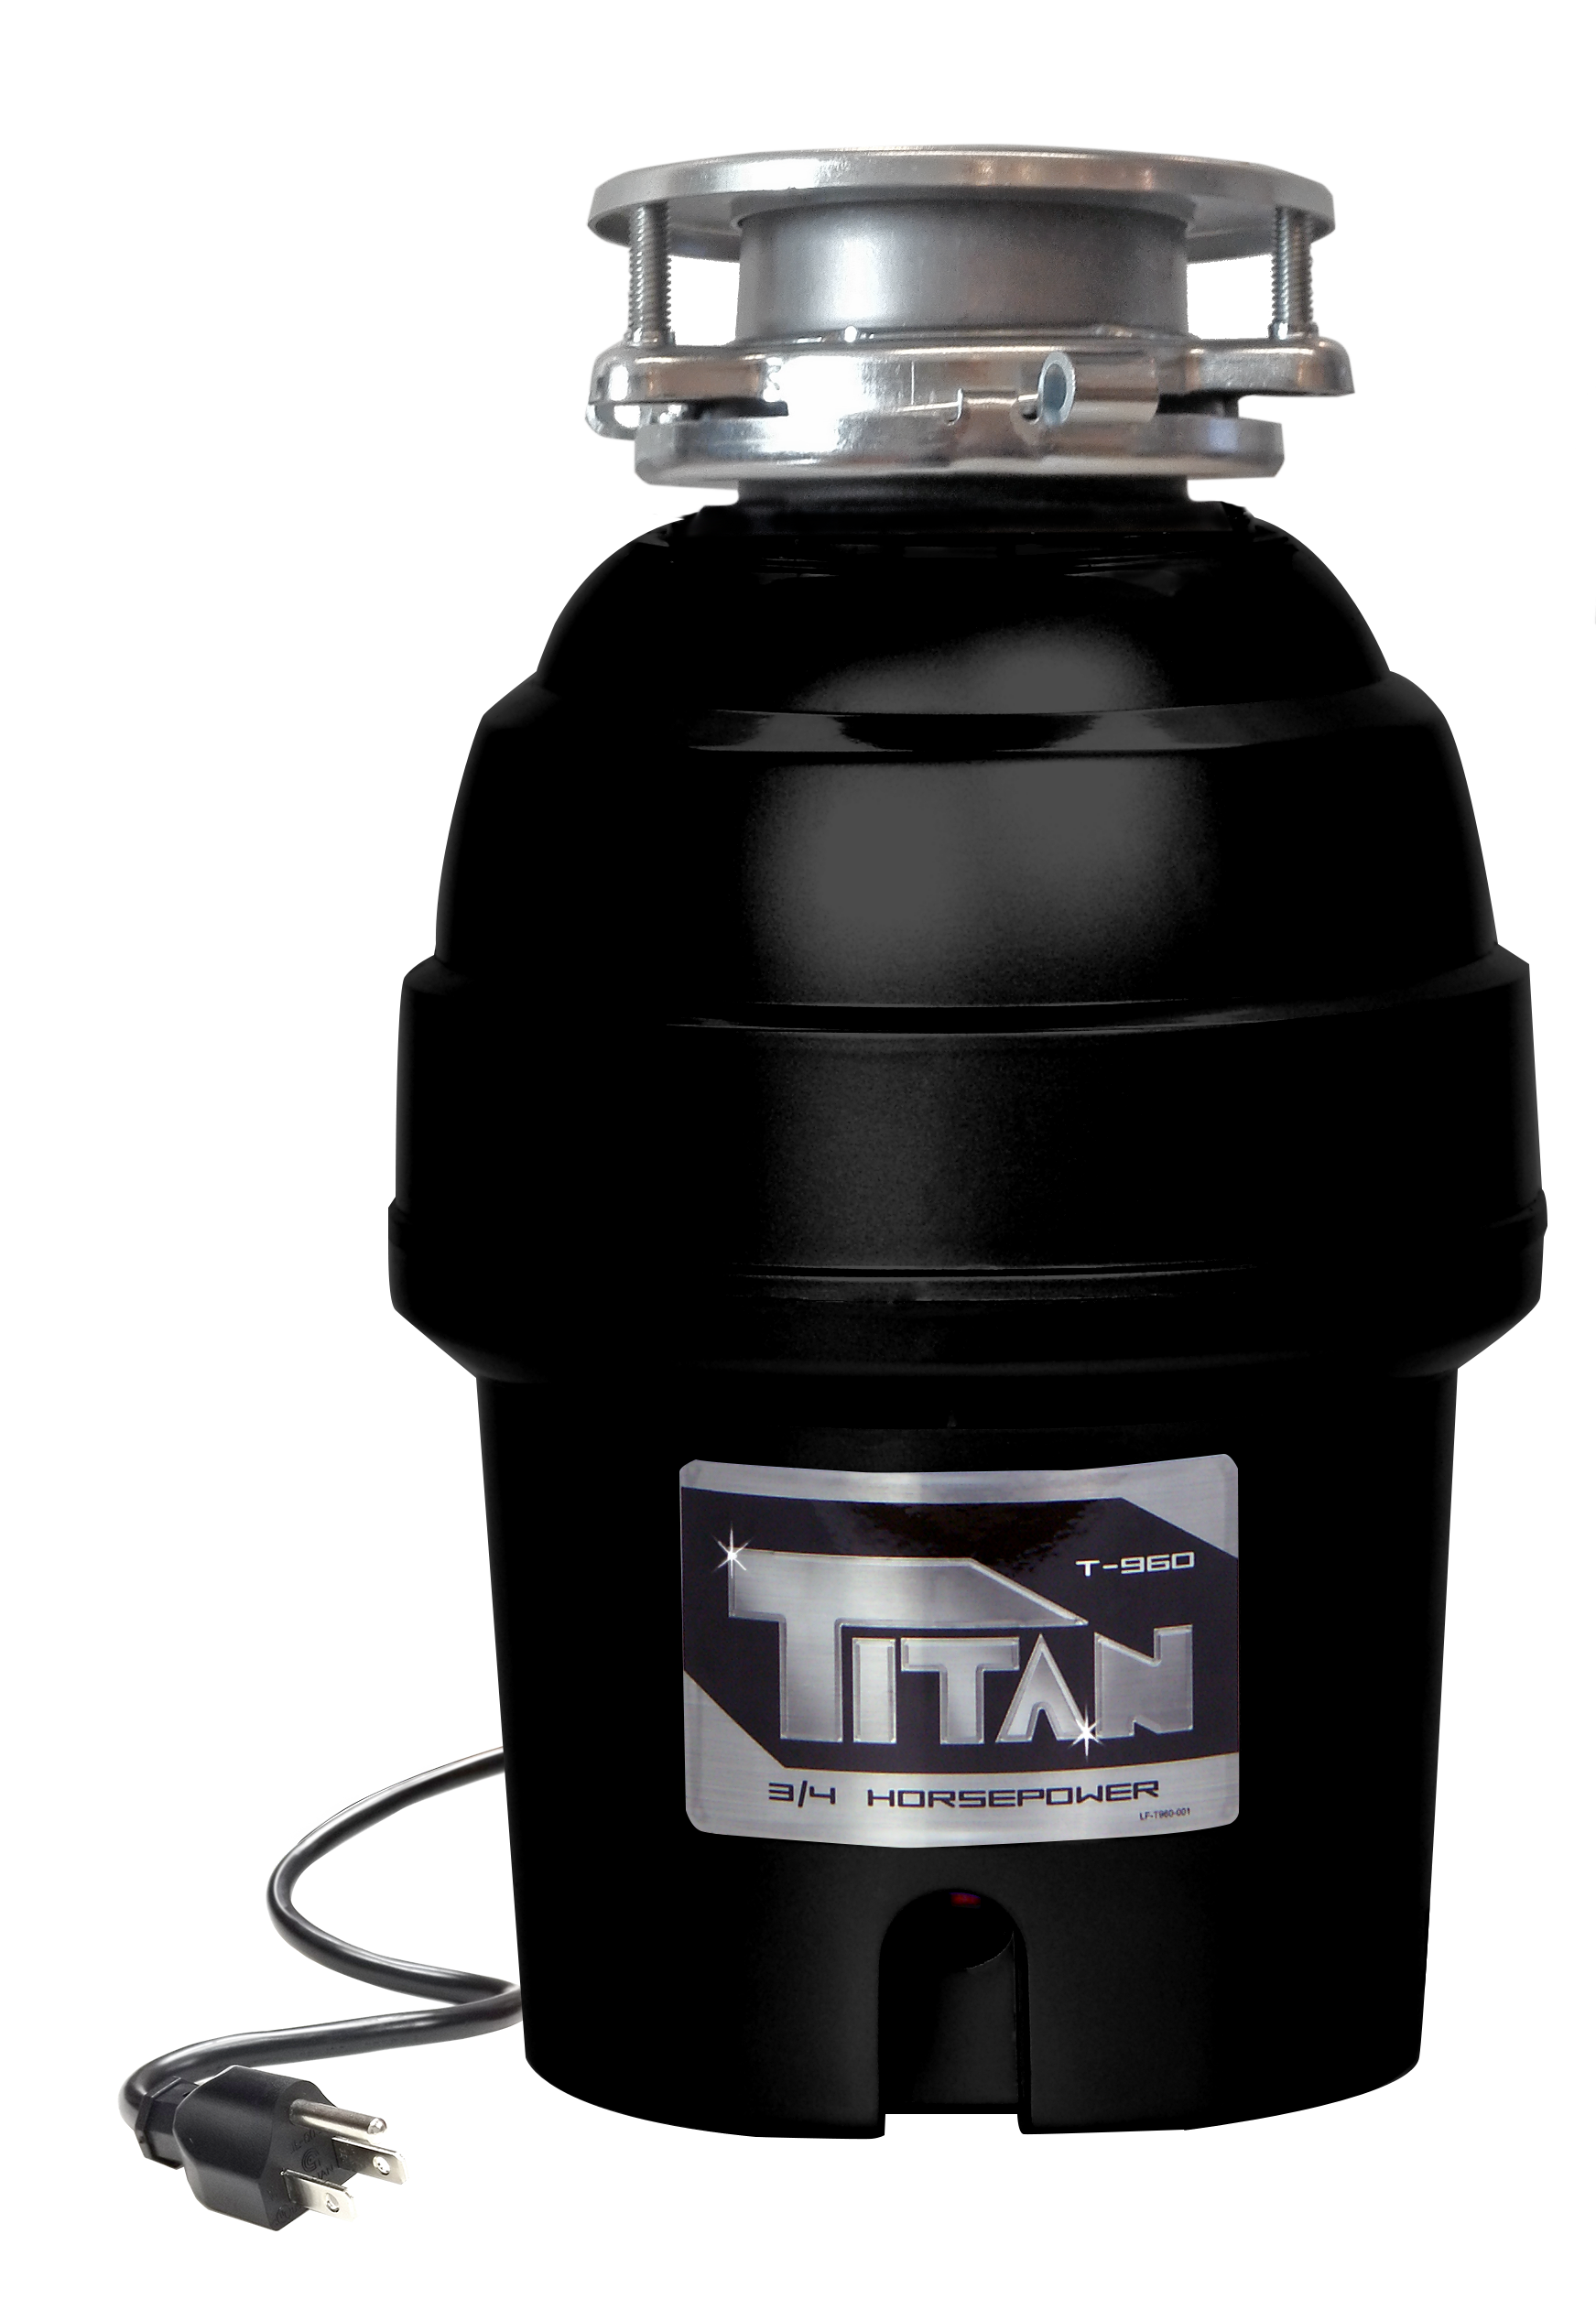 Titan Garbage Disposals Model T-960